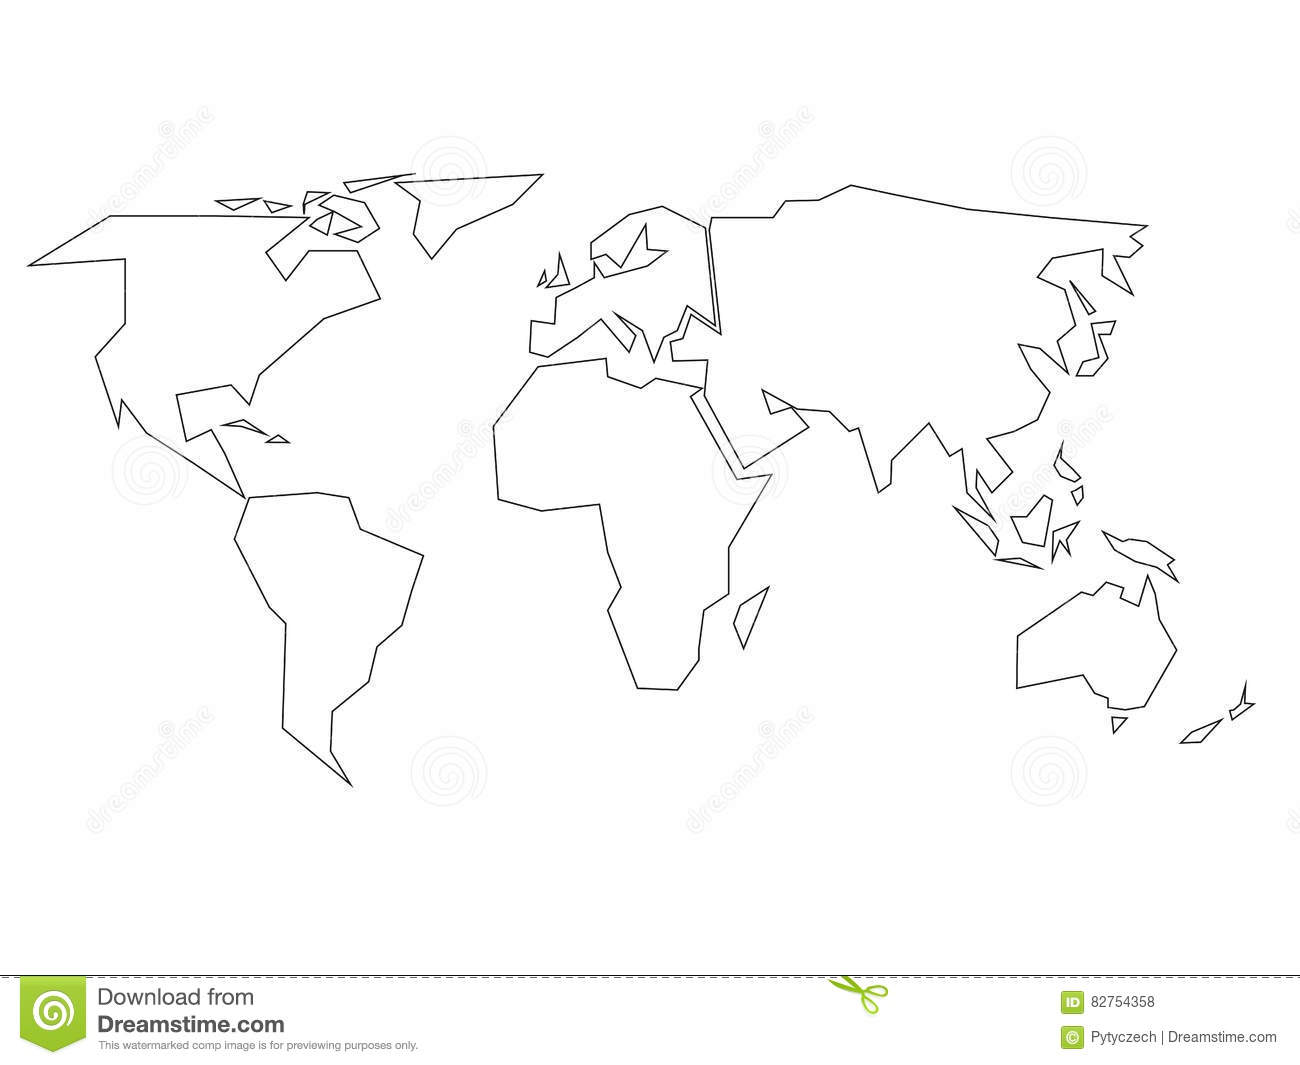 Simplified Black Outline Of World Map Divided To Six Continents - World map drawing outline